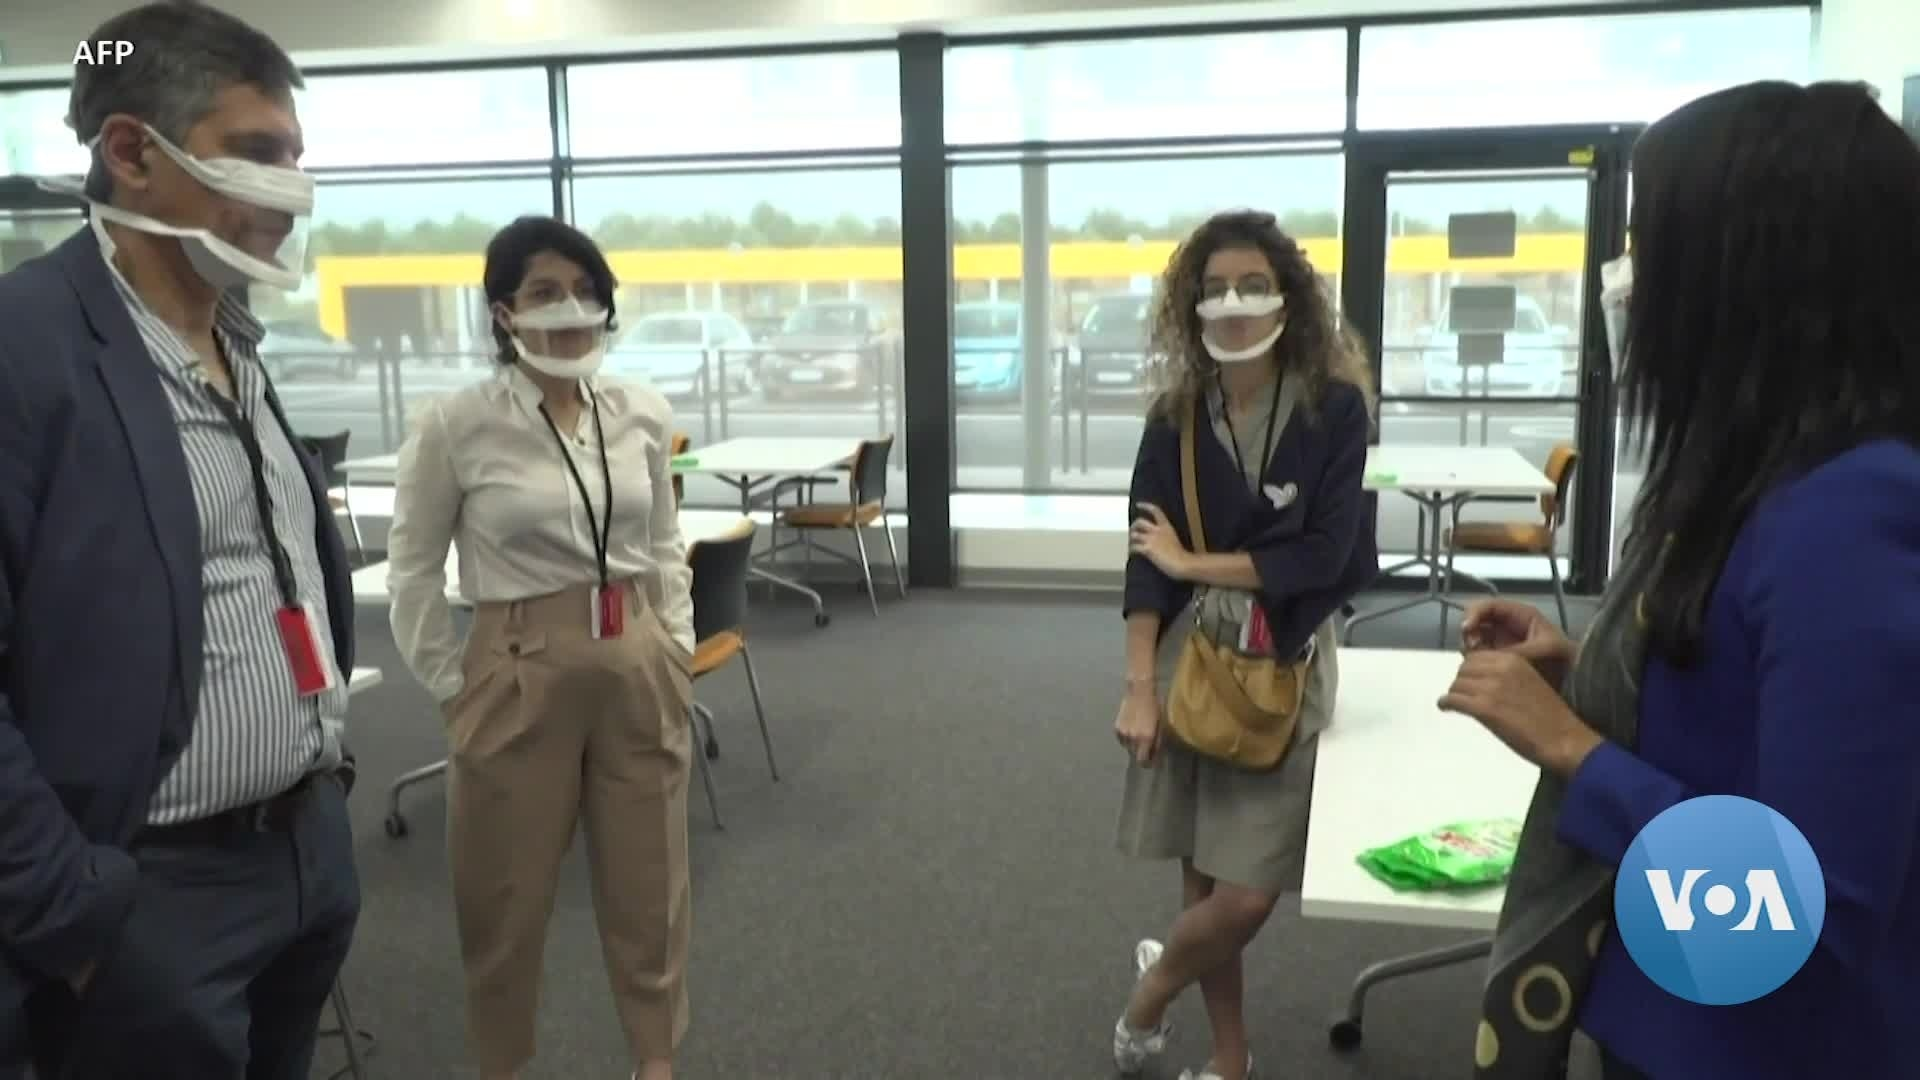 Mandatory Masks Make Life Difficult for Hearing Impaired